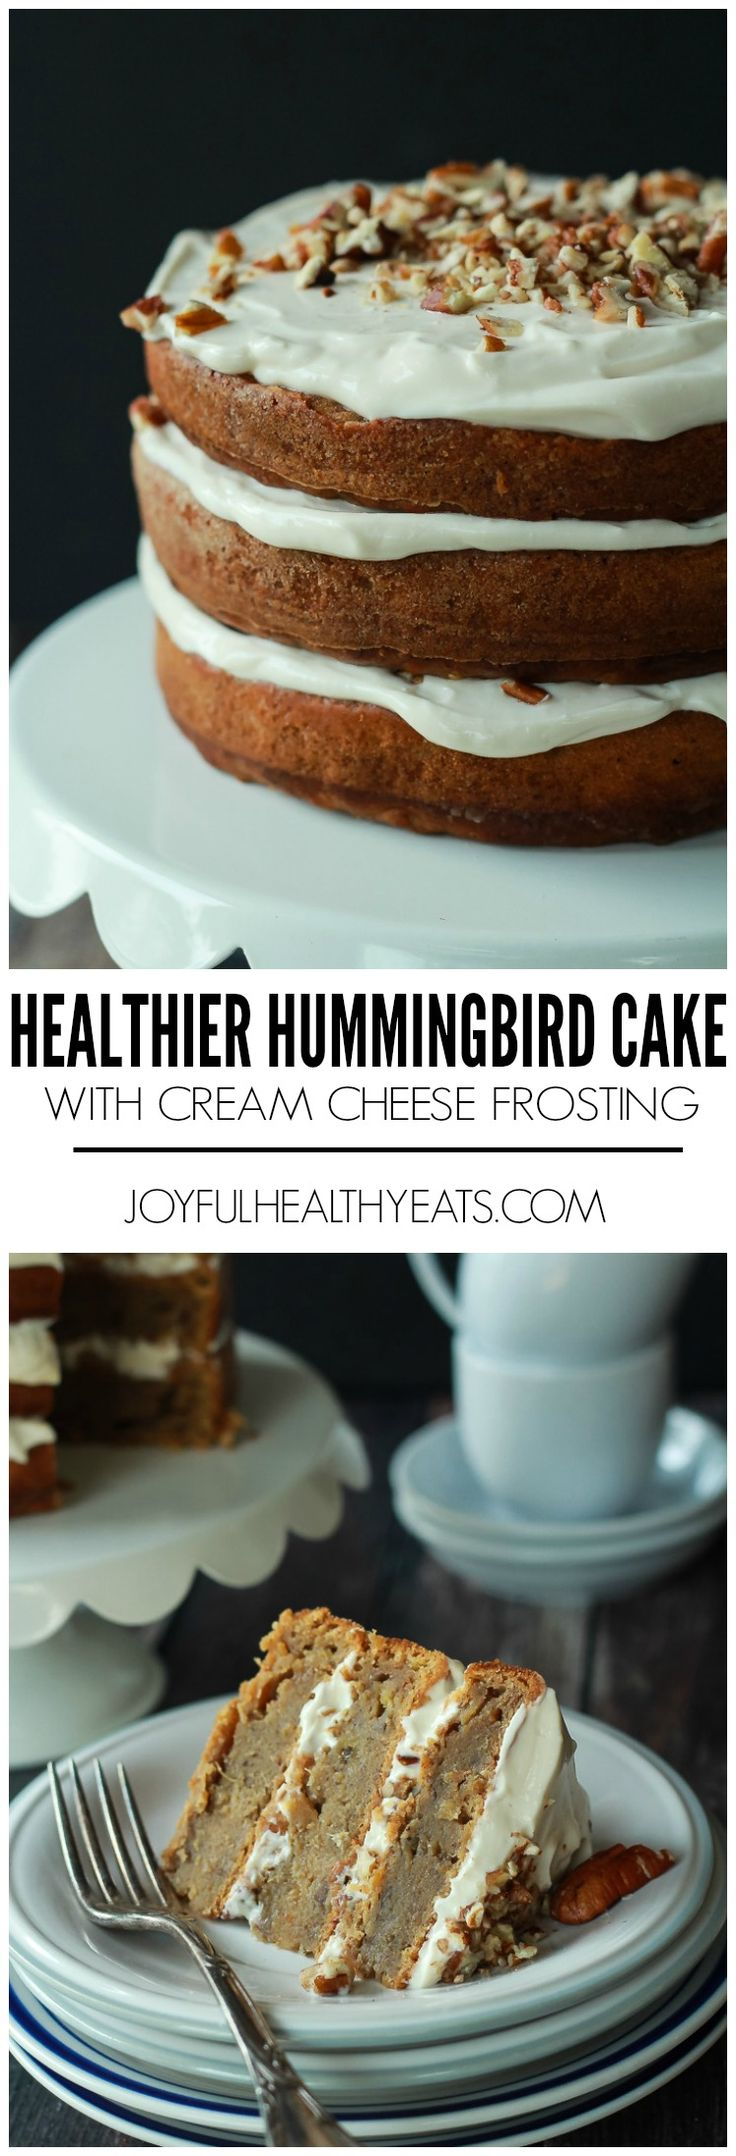 An Easter dessert your family is going to love, Healthier Hummingbird Cake filled with mashed bananas, crushed pineapple, and topped with a light Cream Cheese Frosting! | joyfulhealthyeats.com #recipes